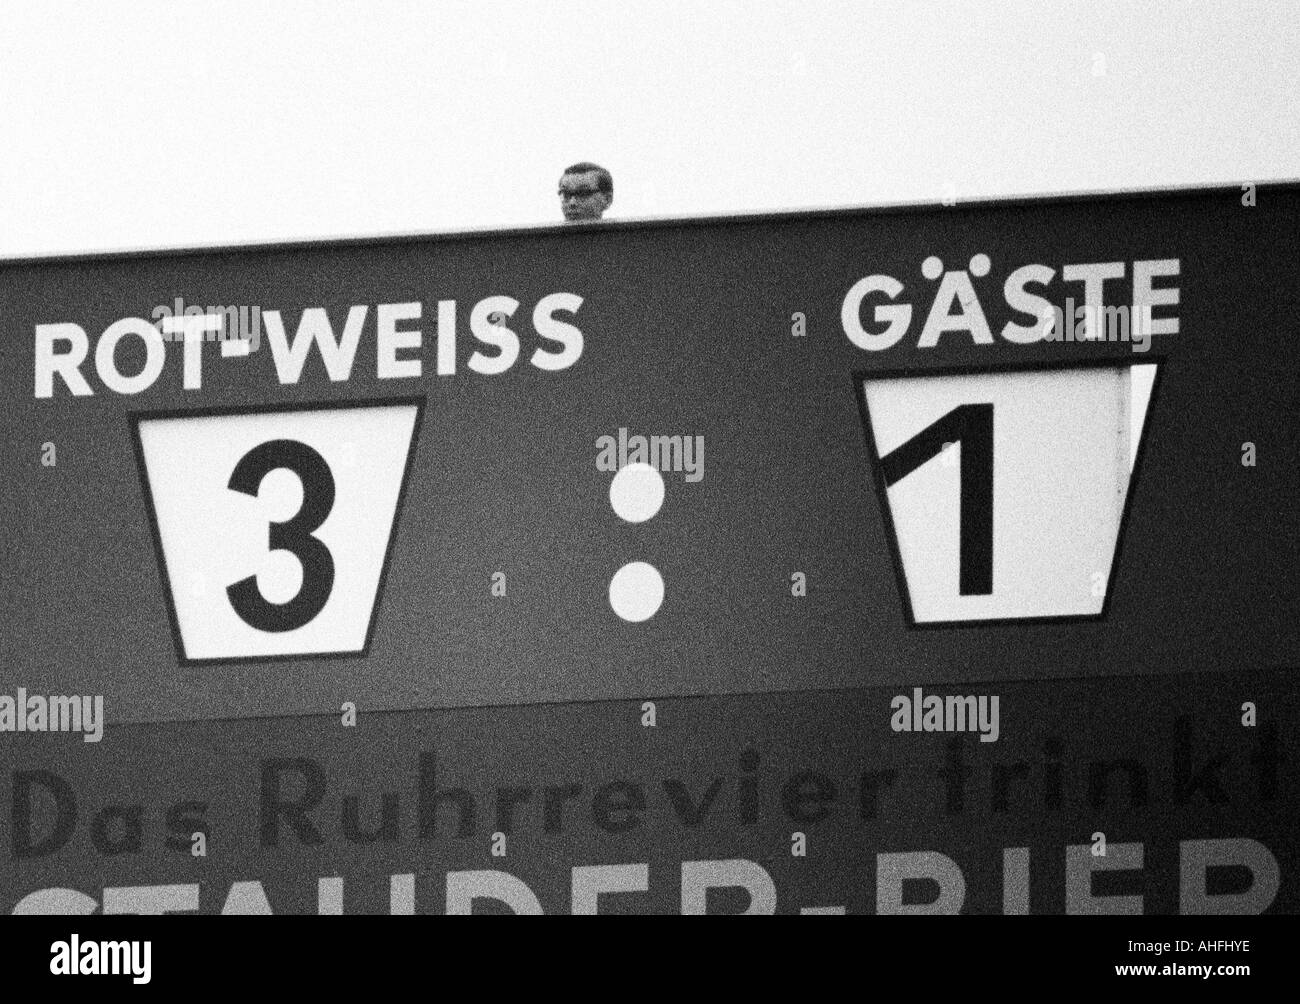 football, Bundesliga, 1966/1967, Stadium at the Hafenstrasse in Essen, Rot-Weiss Essen versus FC Bayern Munich 3:1, scoreboard showing the final result, above the head of the person who runs the display of results - Stock Image